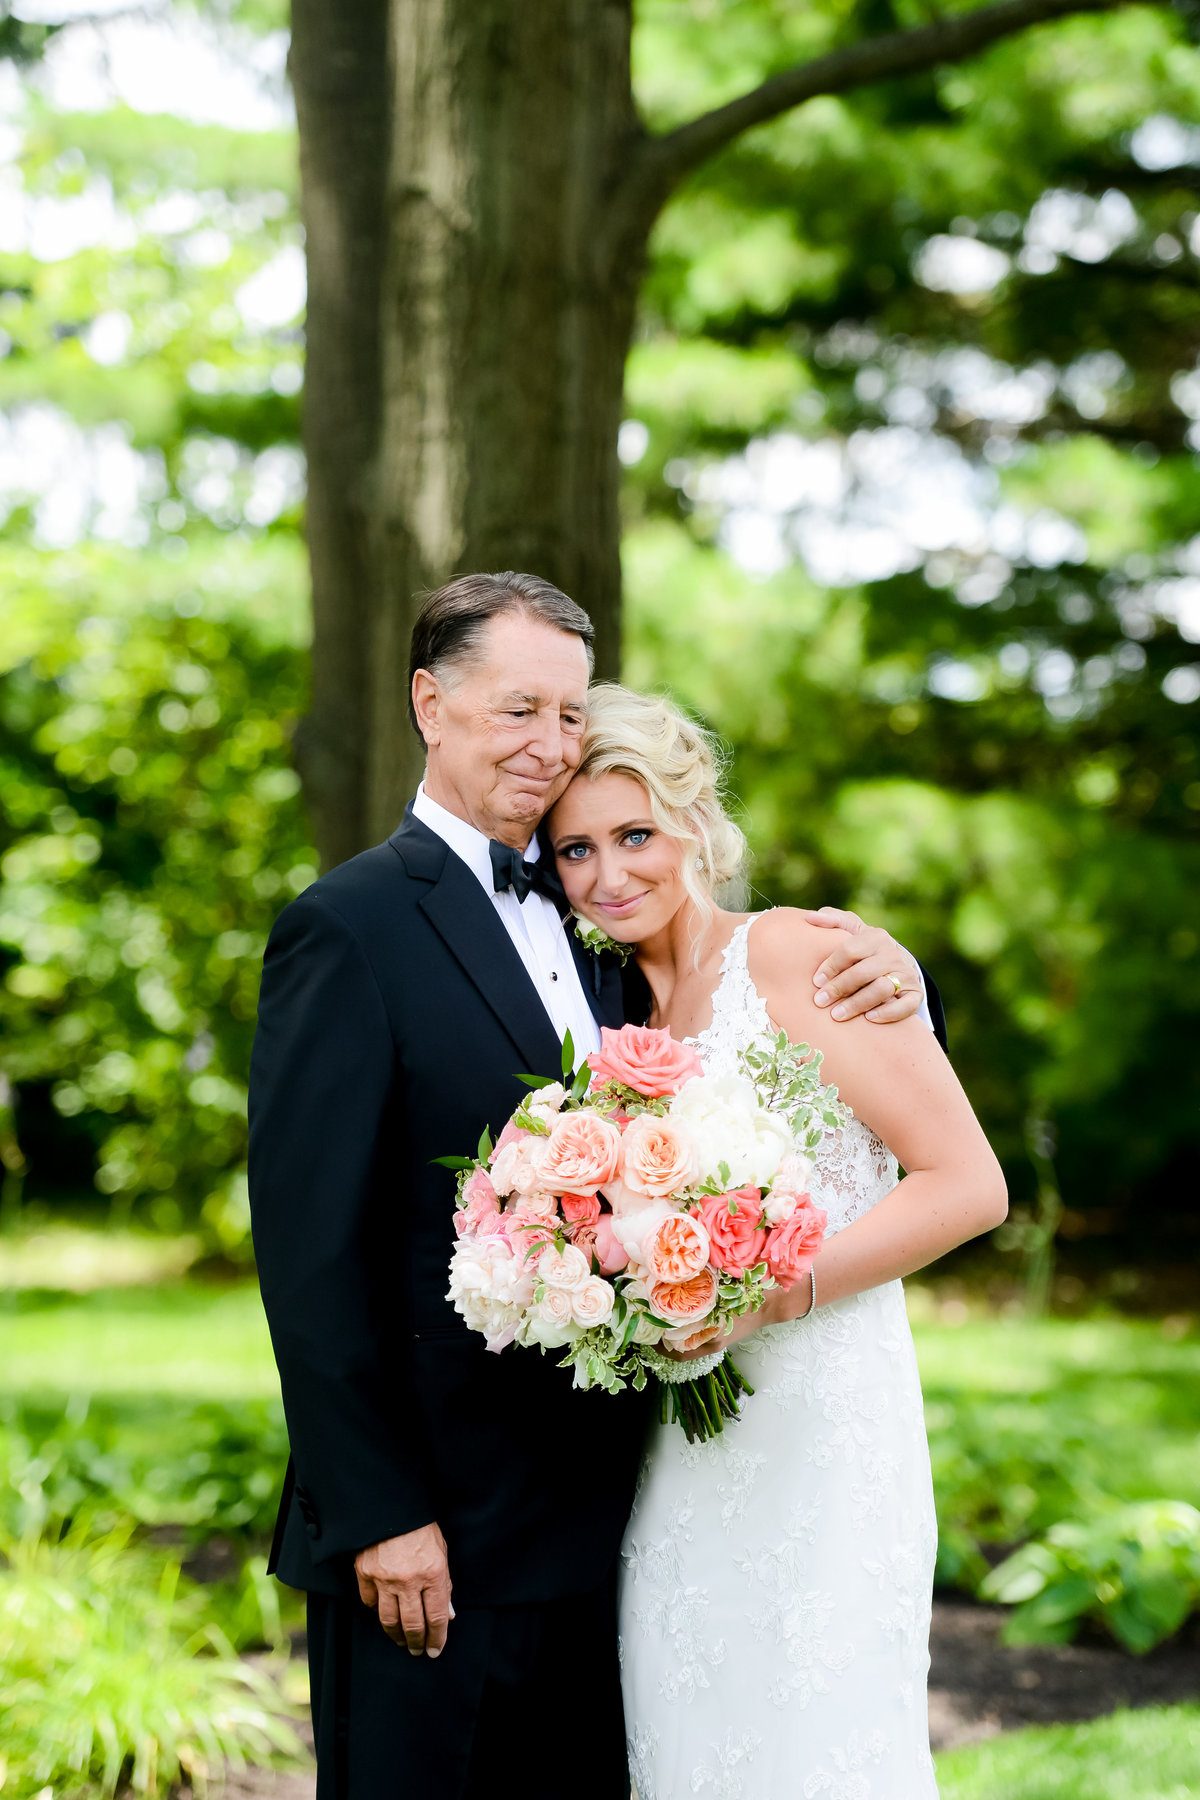 Indianapolis Wedding Photographer | Sara Ackermann Photography-42